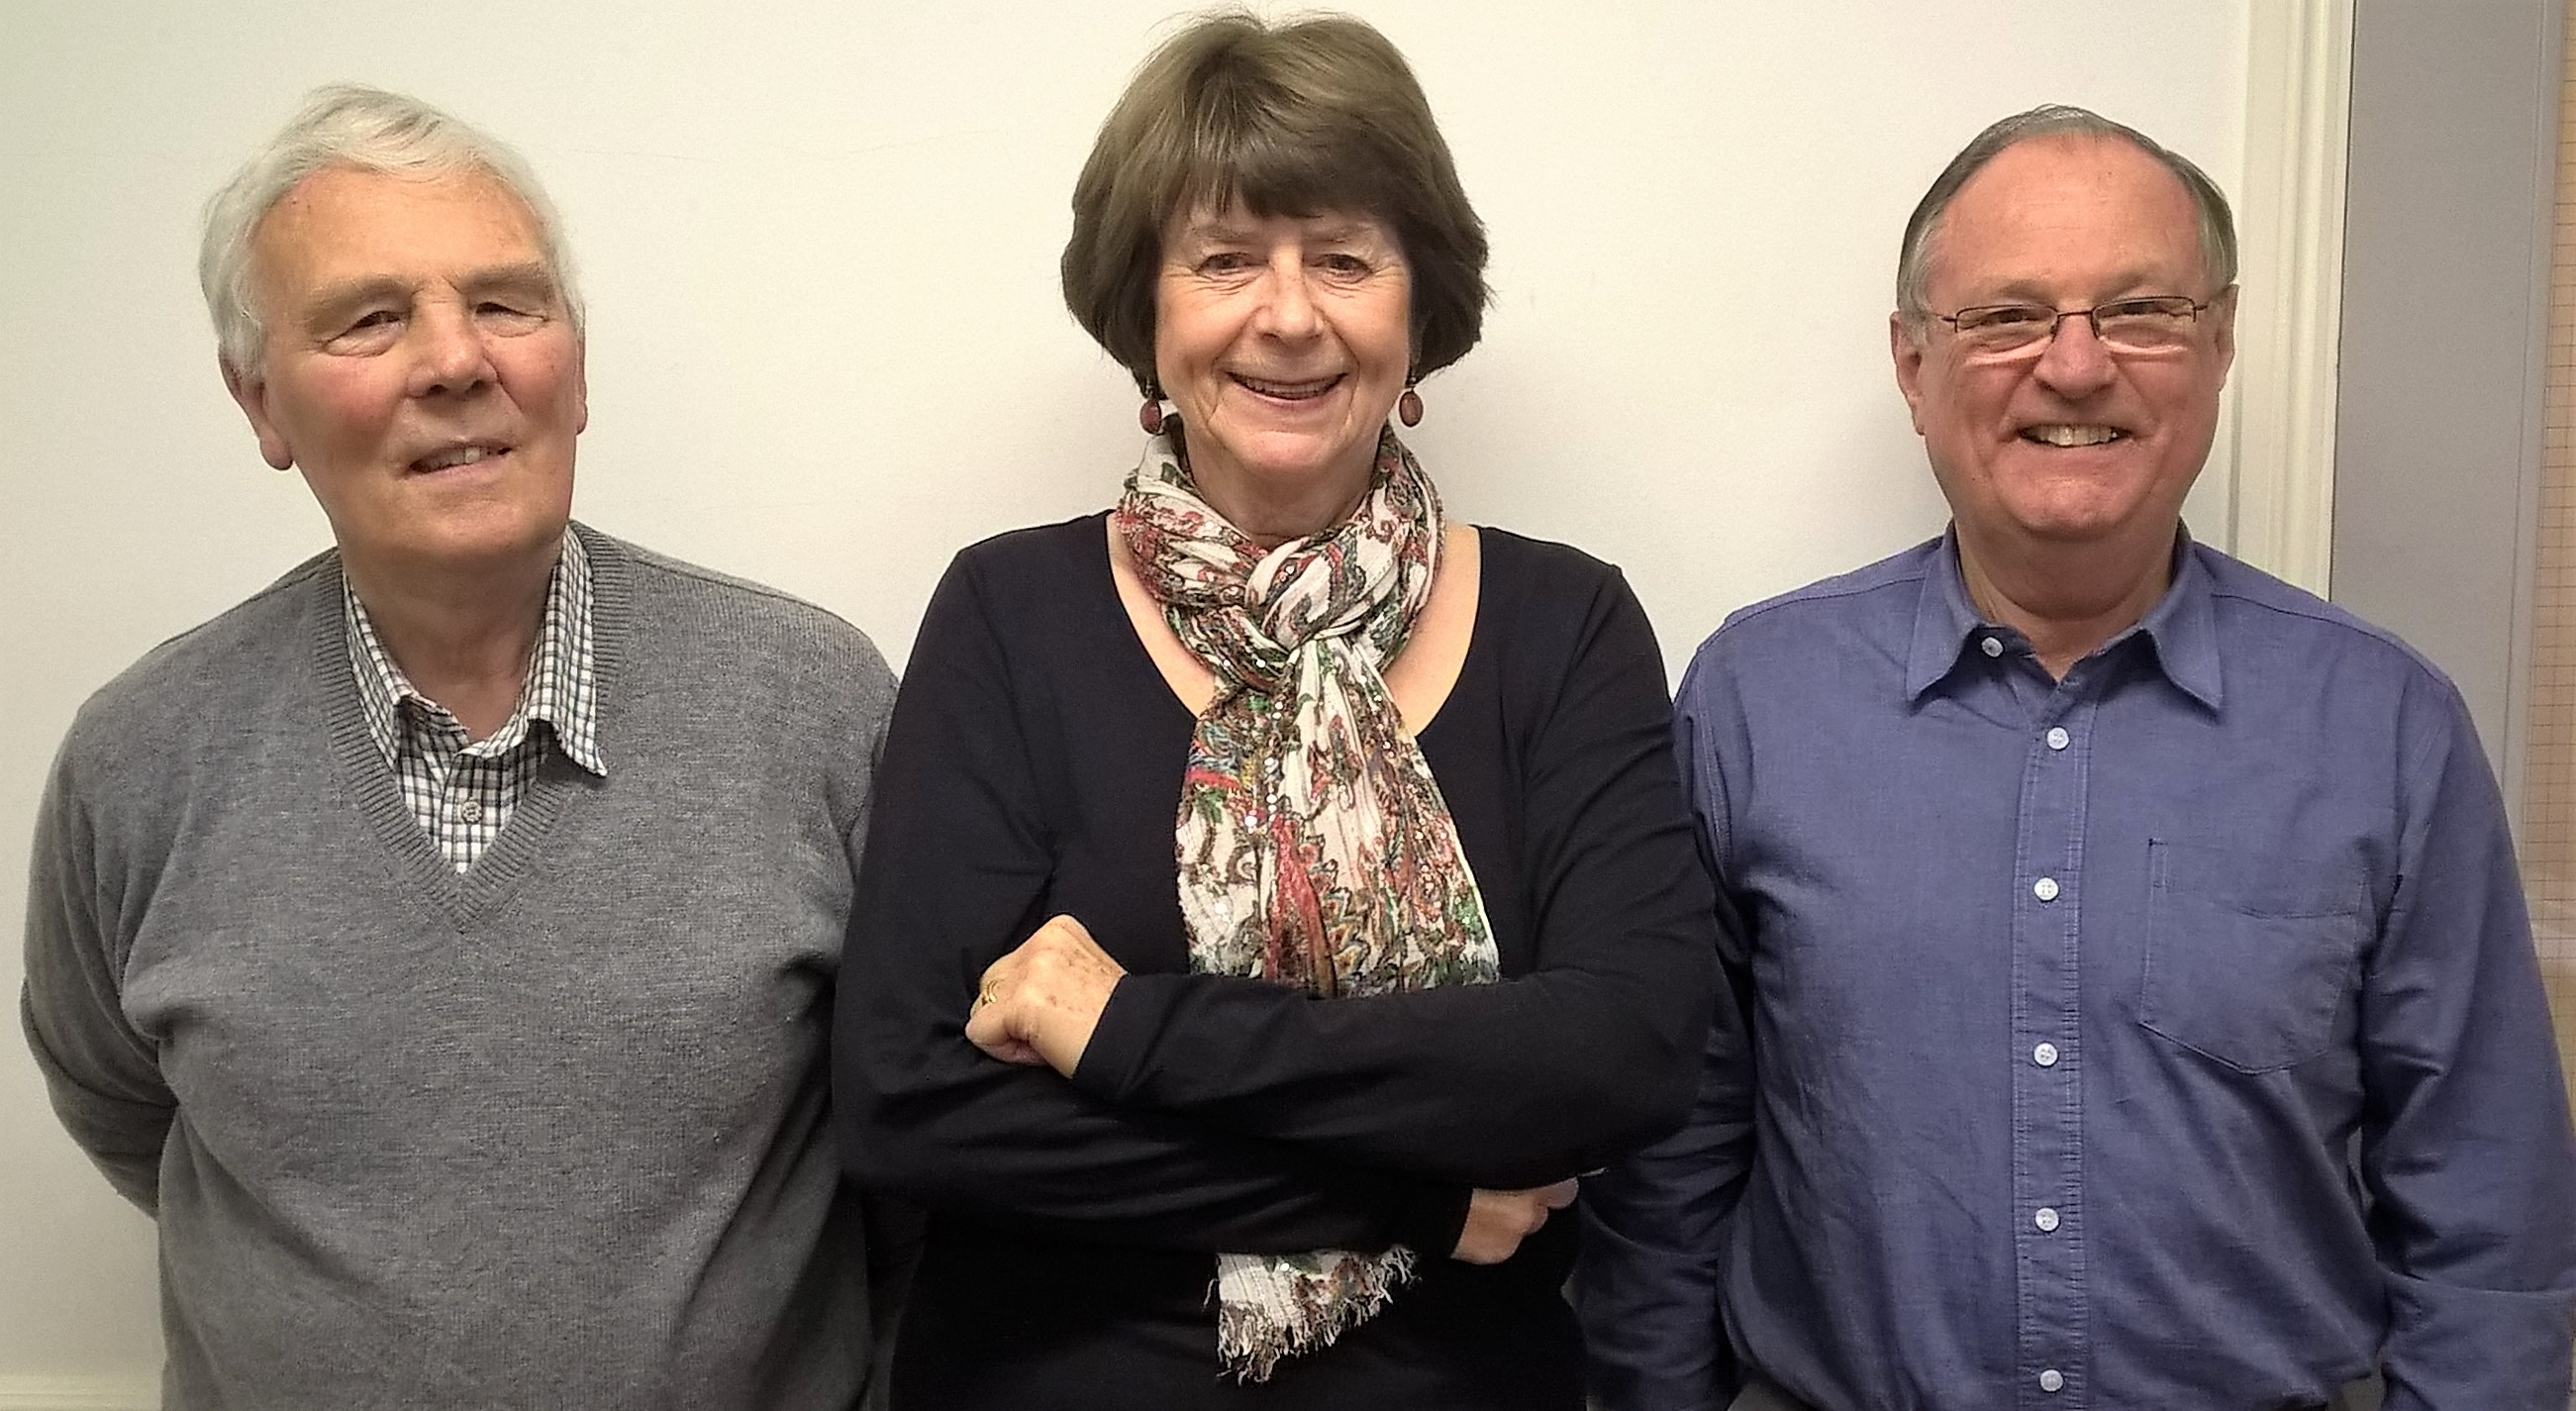 Pam Ayres with WTN secretary Peter Bee and chairman Peter Brading.